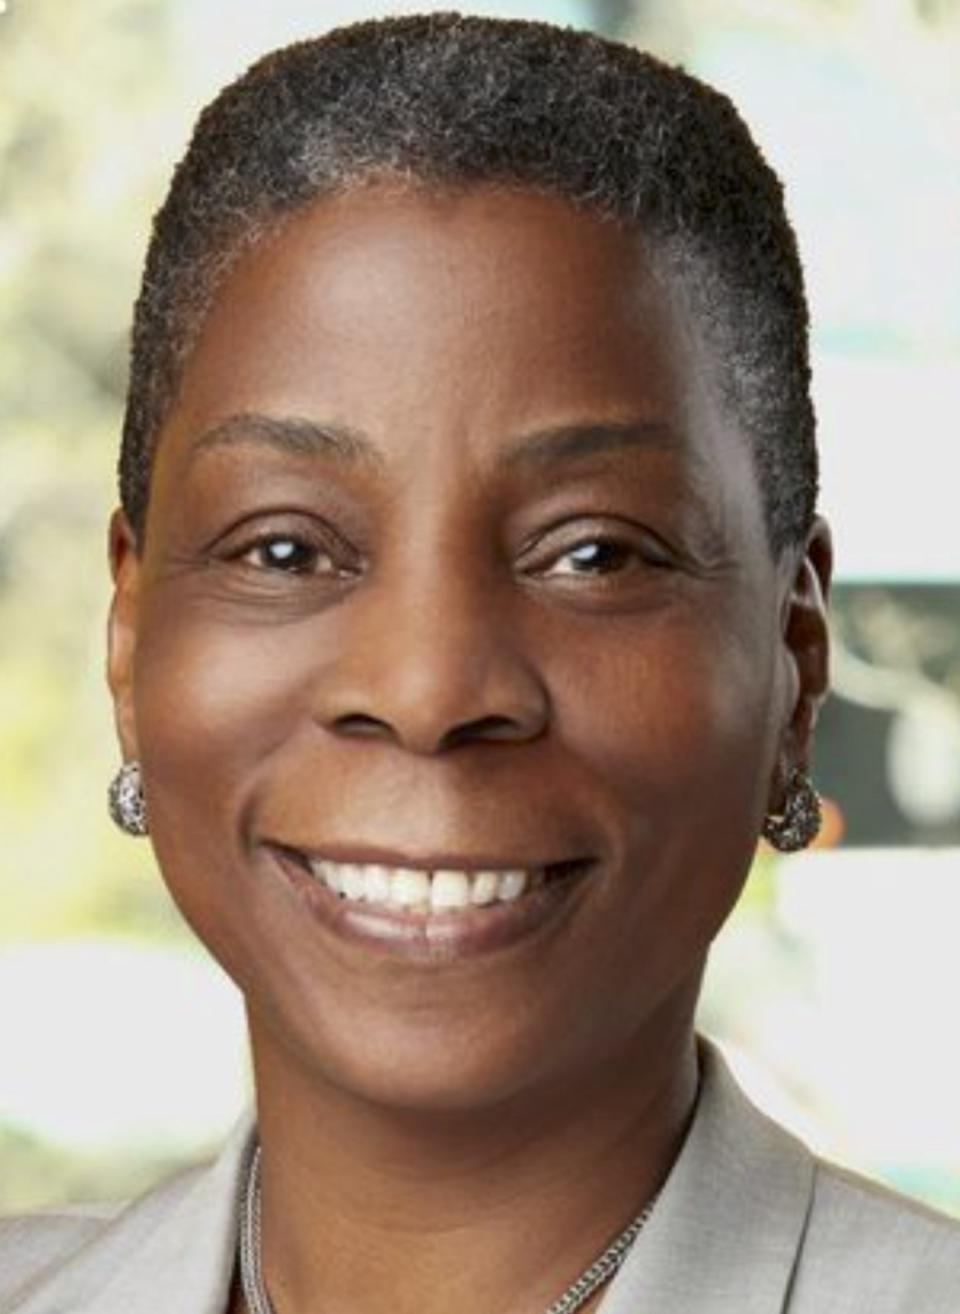 Ursula Burns, the first Black woman CEO of an S&P 500 company